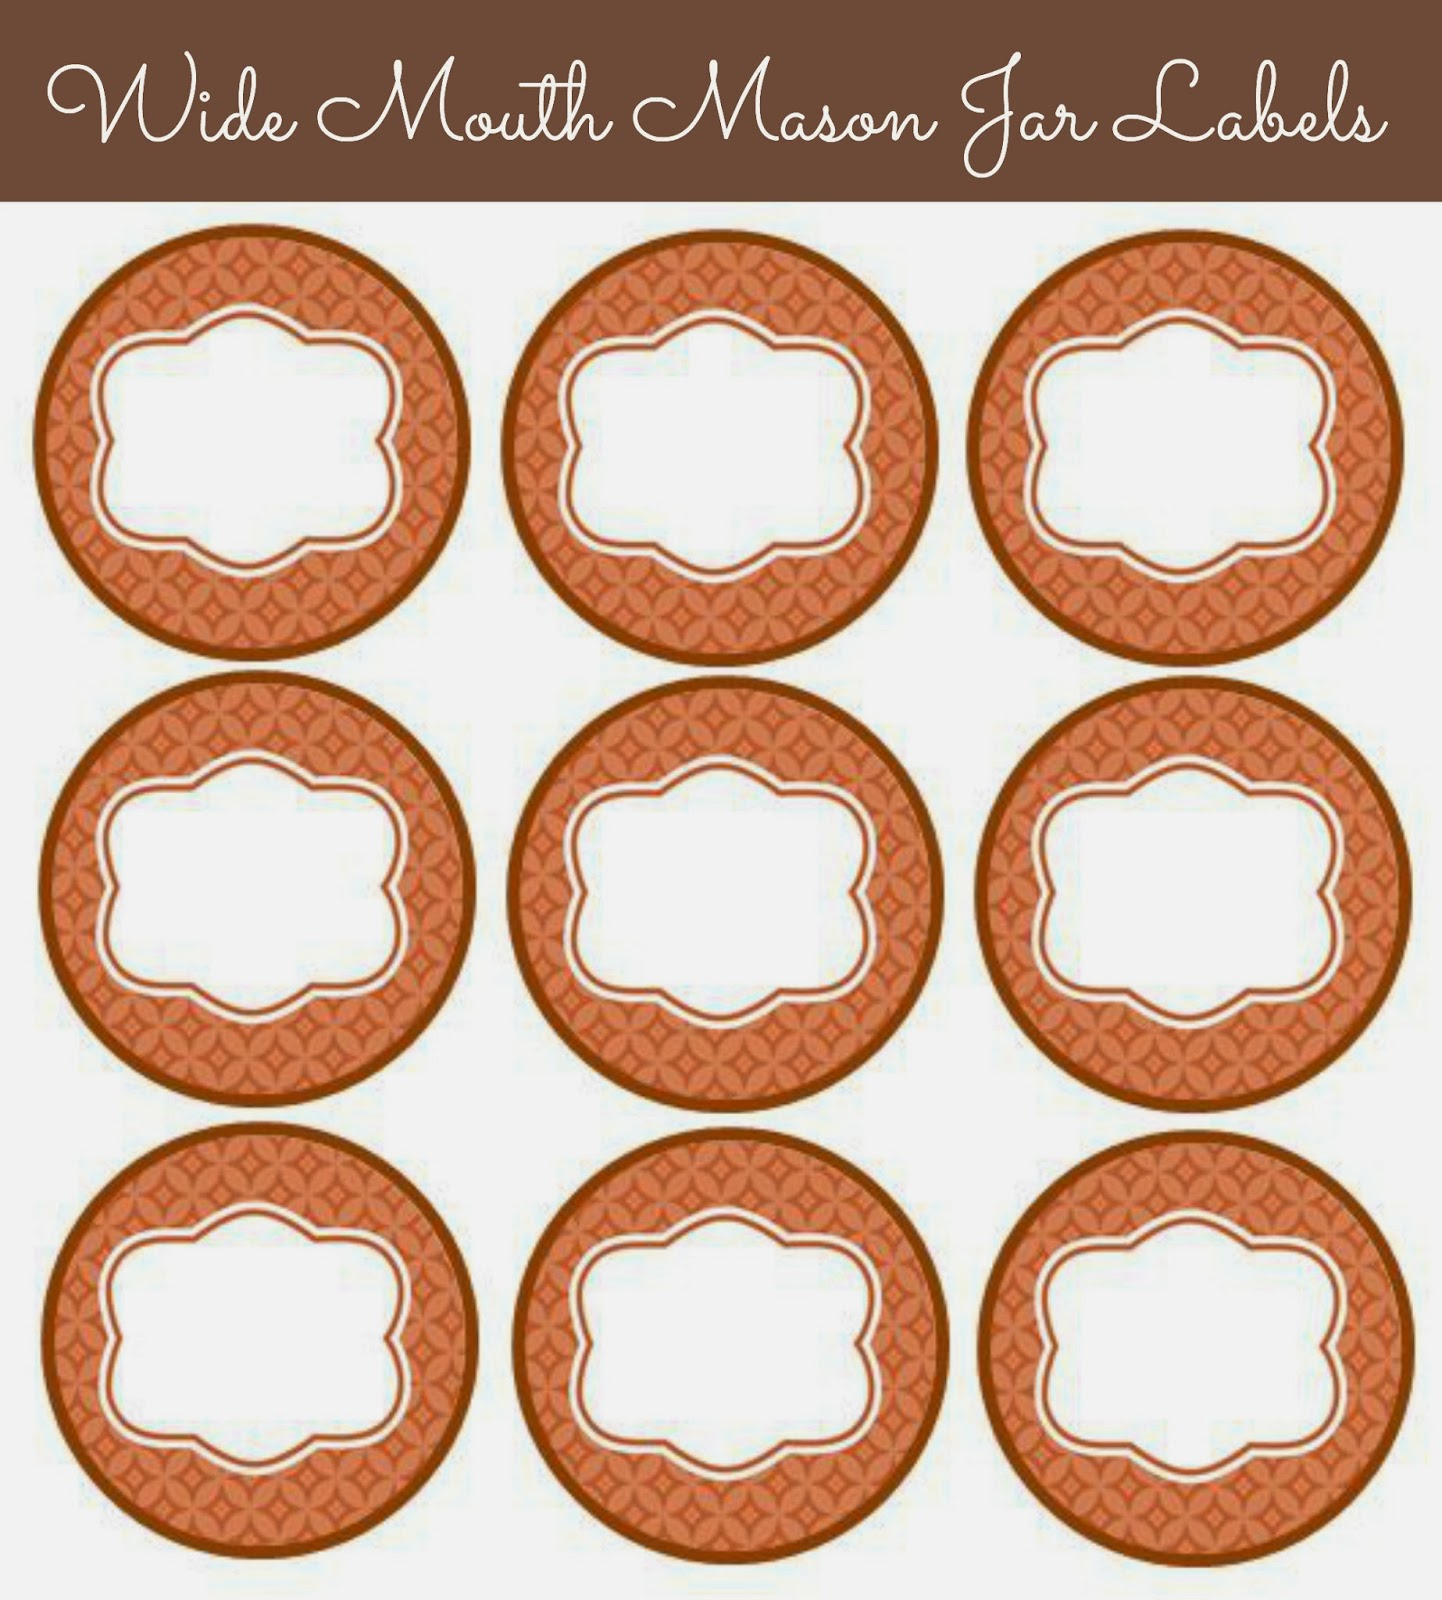 56 Cute Mason Jar Labels | Kittybabylove - Free Printable Mason Jar Labels Template